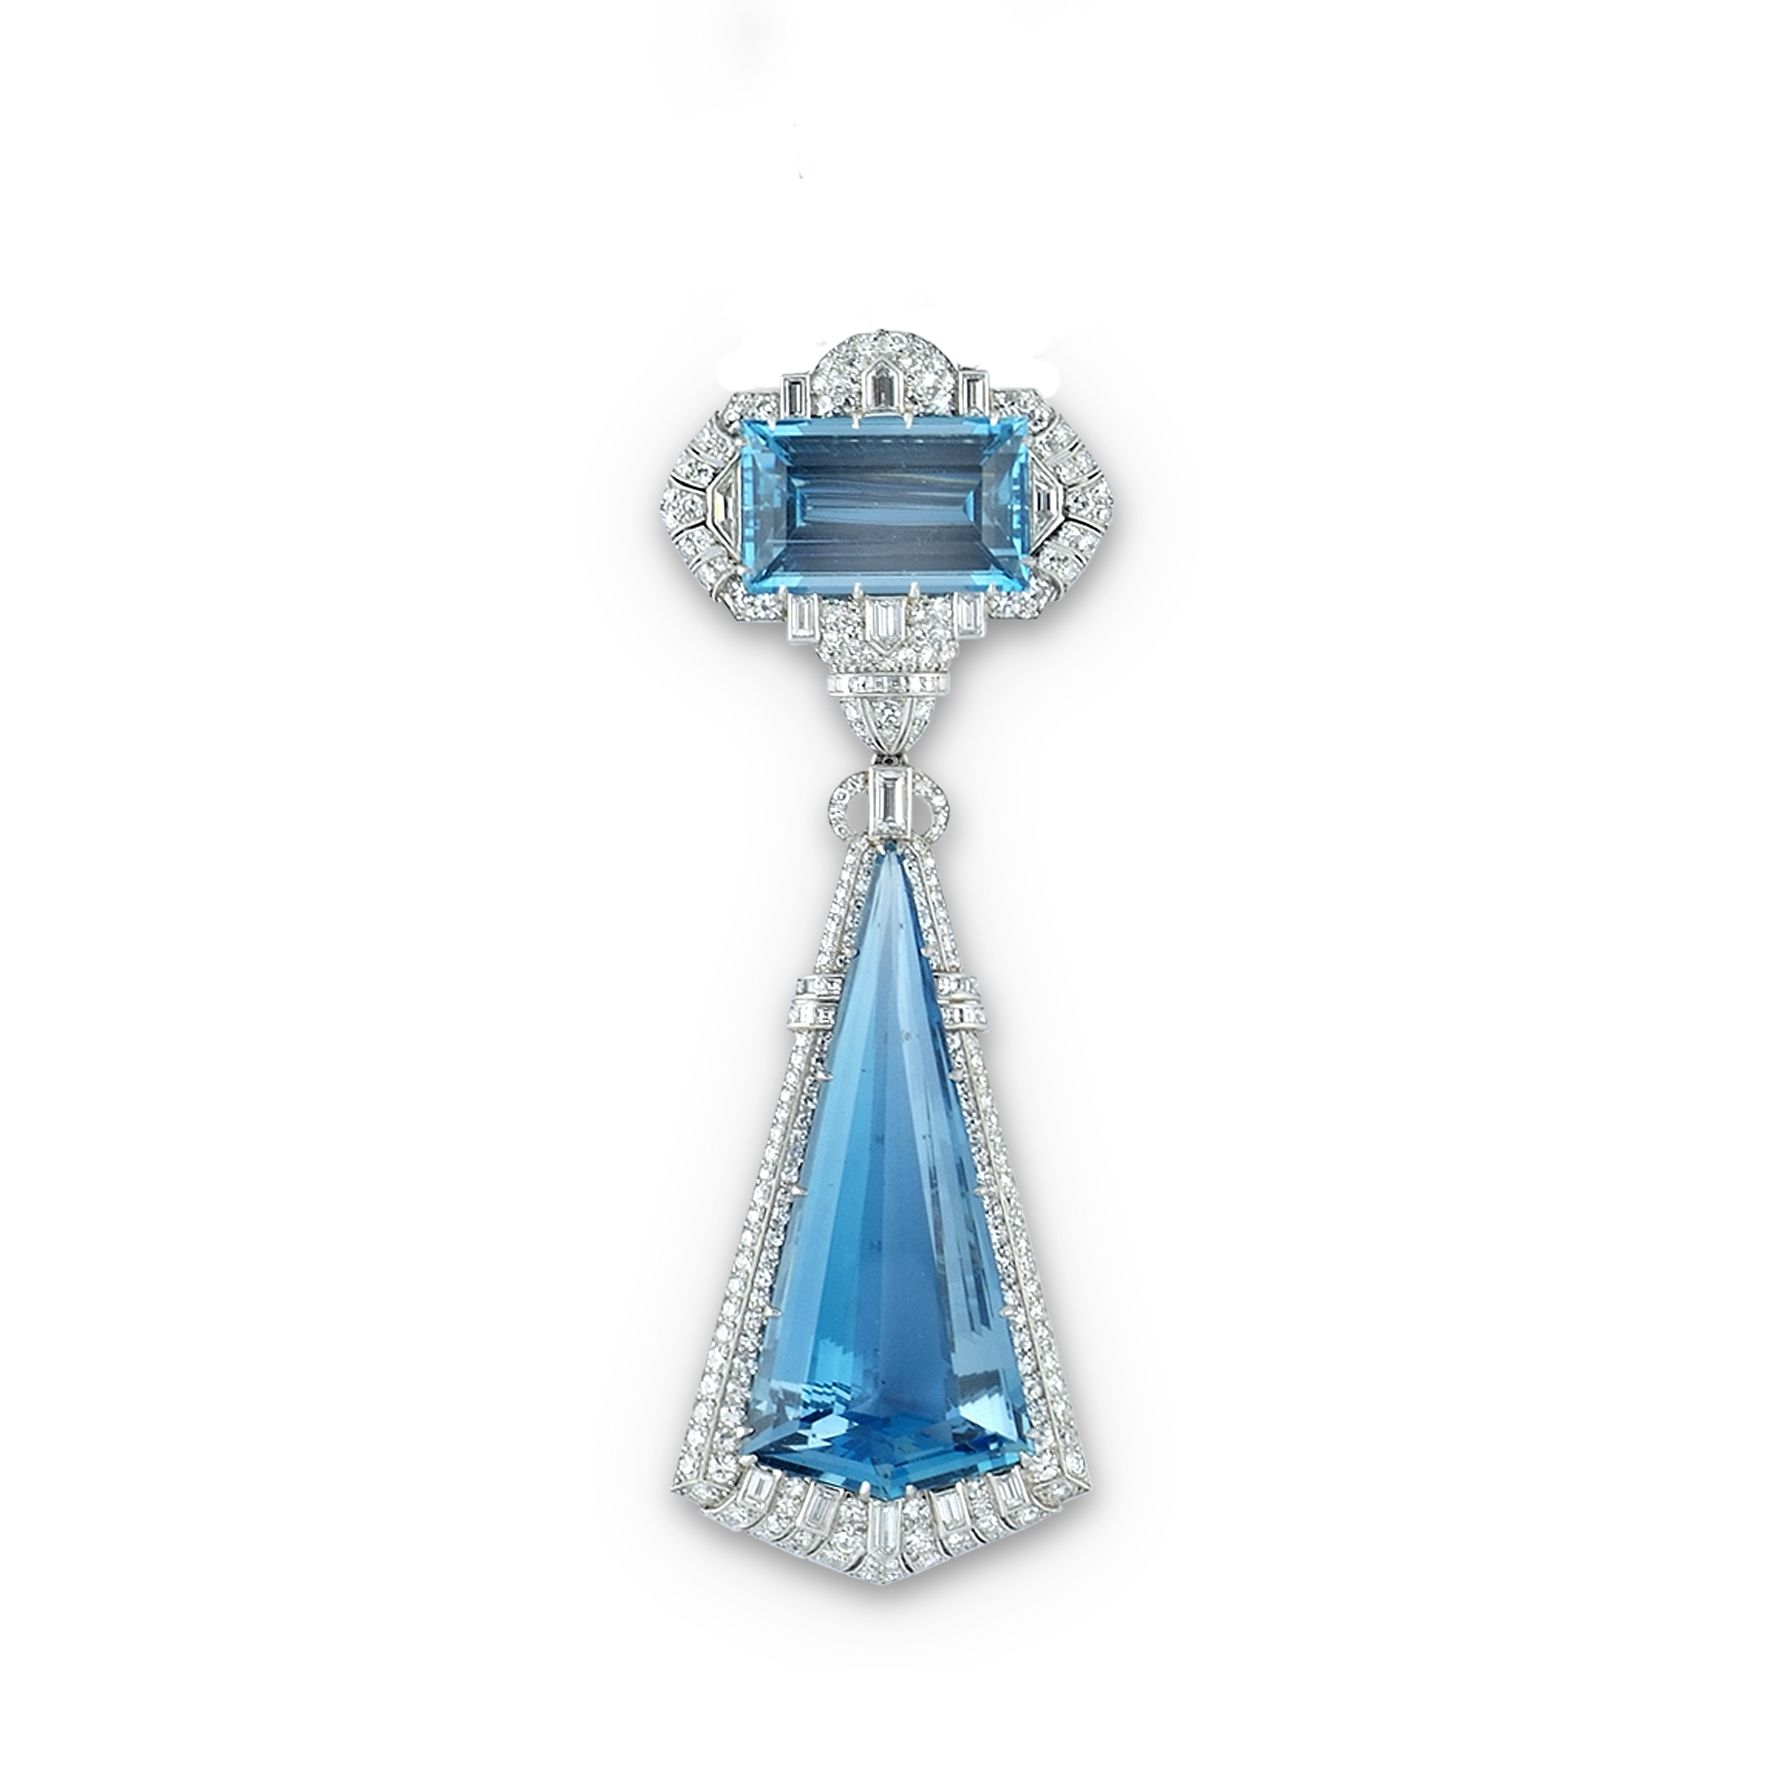 An Art Deco aquamarine and diamond brooch pendant Of strong geometric design, composed of a rectangular-shaped aquamarine surmount within a surround of single-, baguette-, torpedo-, and trapezoid-shaped diamonds, suspending a larger triangular-shaped aquamarine within a similar surround, 1930s,, American. Detachable chain and brooch fittings. Accompanied by a certificate from the AGL stating that the aquamarines are natural with no clarity enhancement.